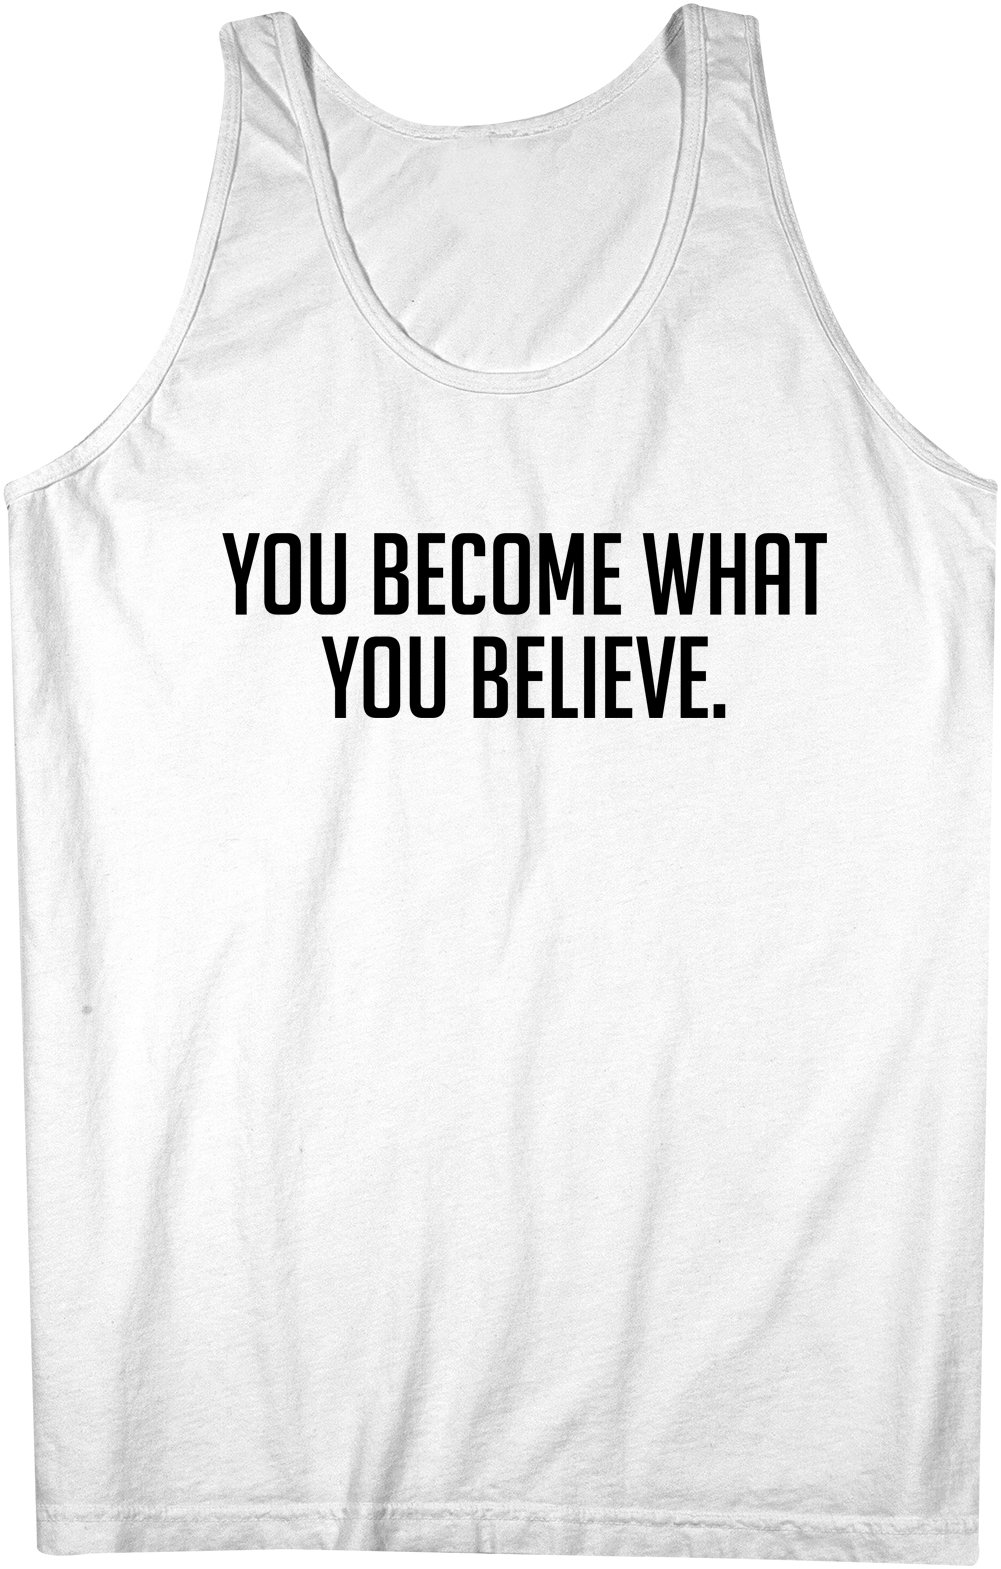 You Become What You Believe Tank Top Sleeveless Shirt X 1519